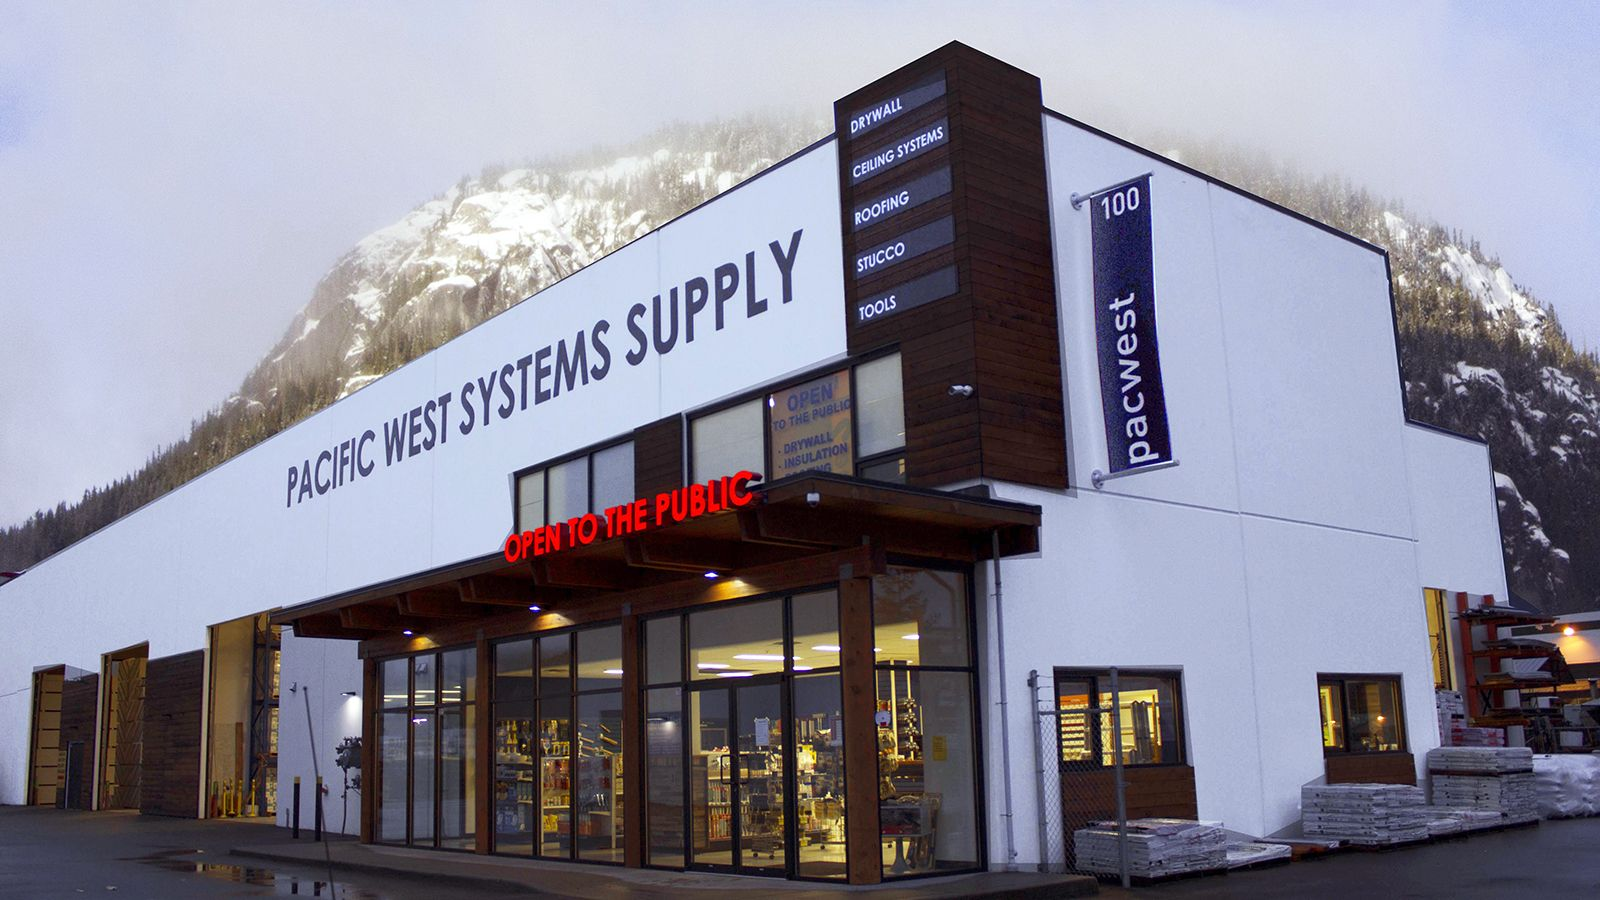 Pacific West Systems Supply Ltd logo